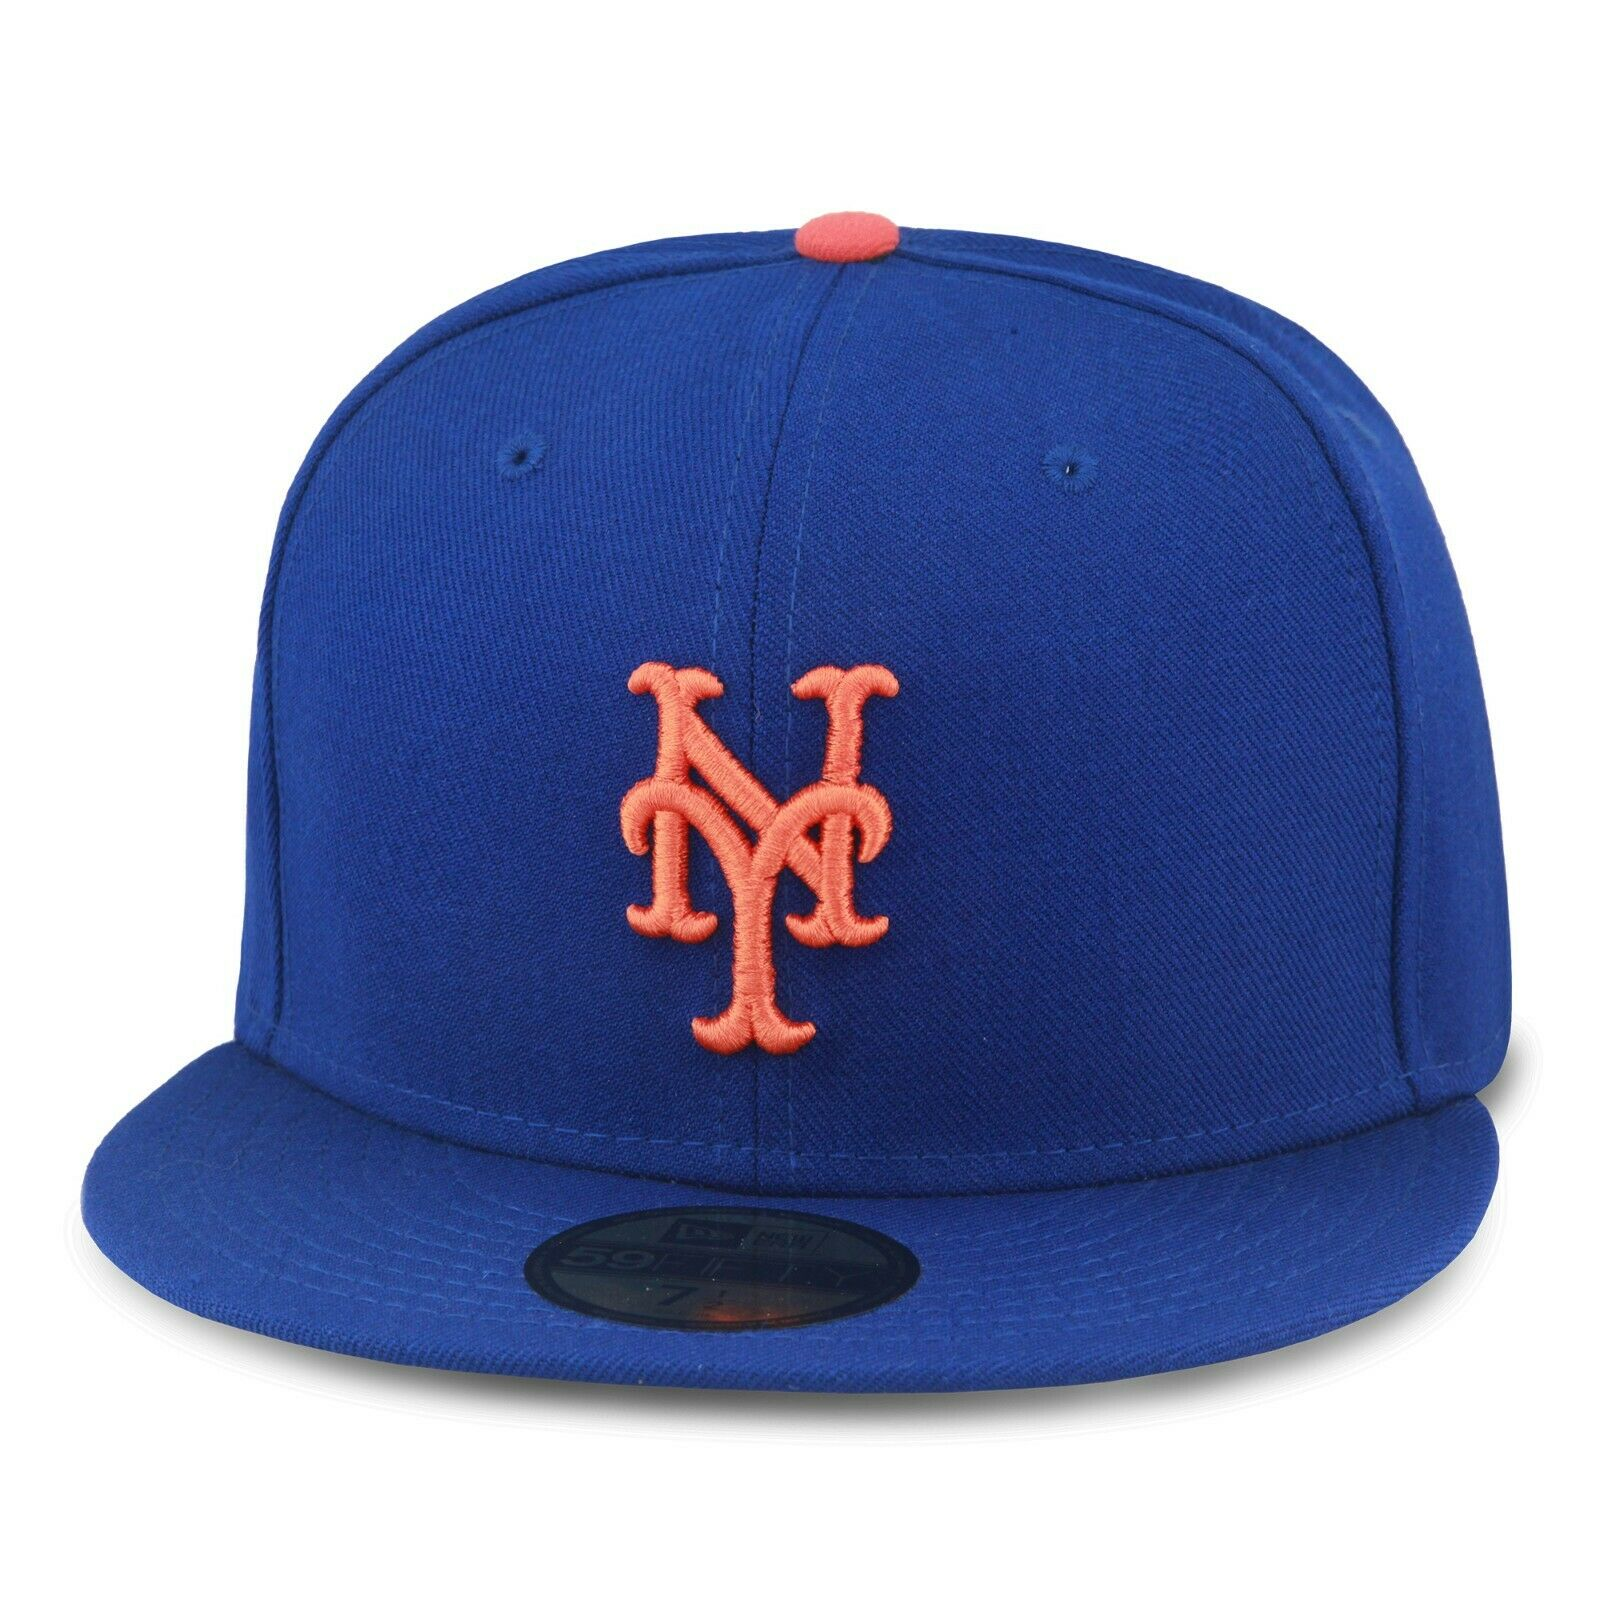 9208a69c New Era 59FIFTY New York Mets Fitted Hat Cap Home All Royal/Orange/Grey  Bottom · $29.00 · Hats